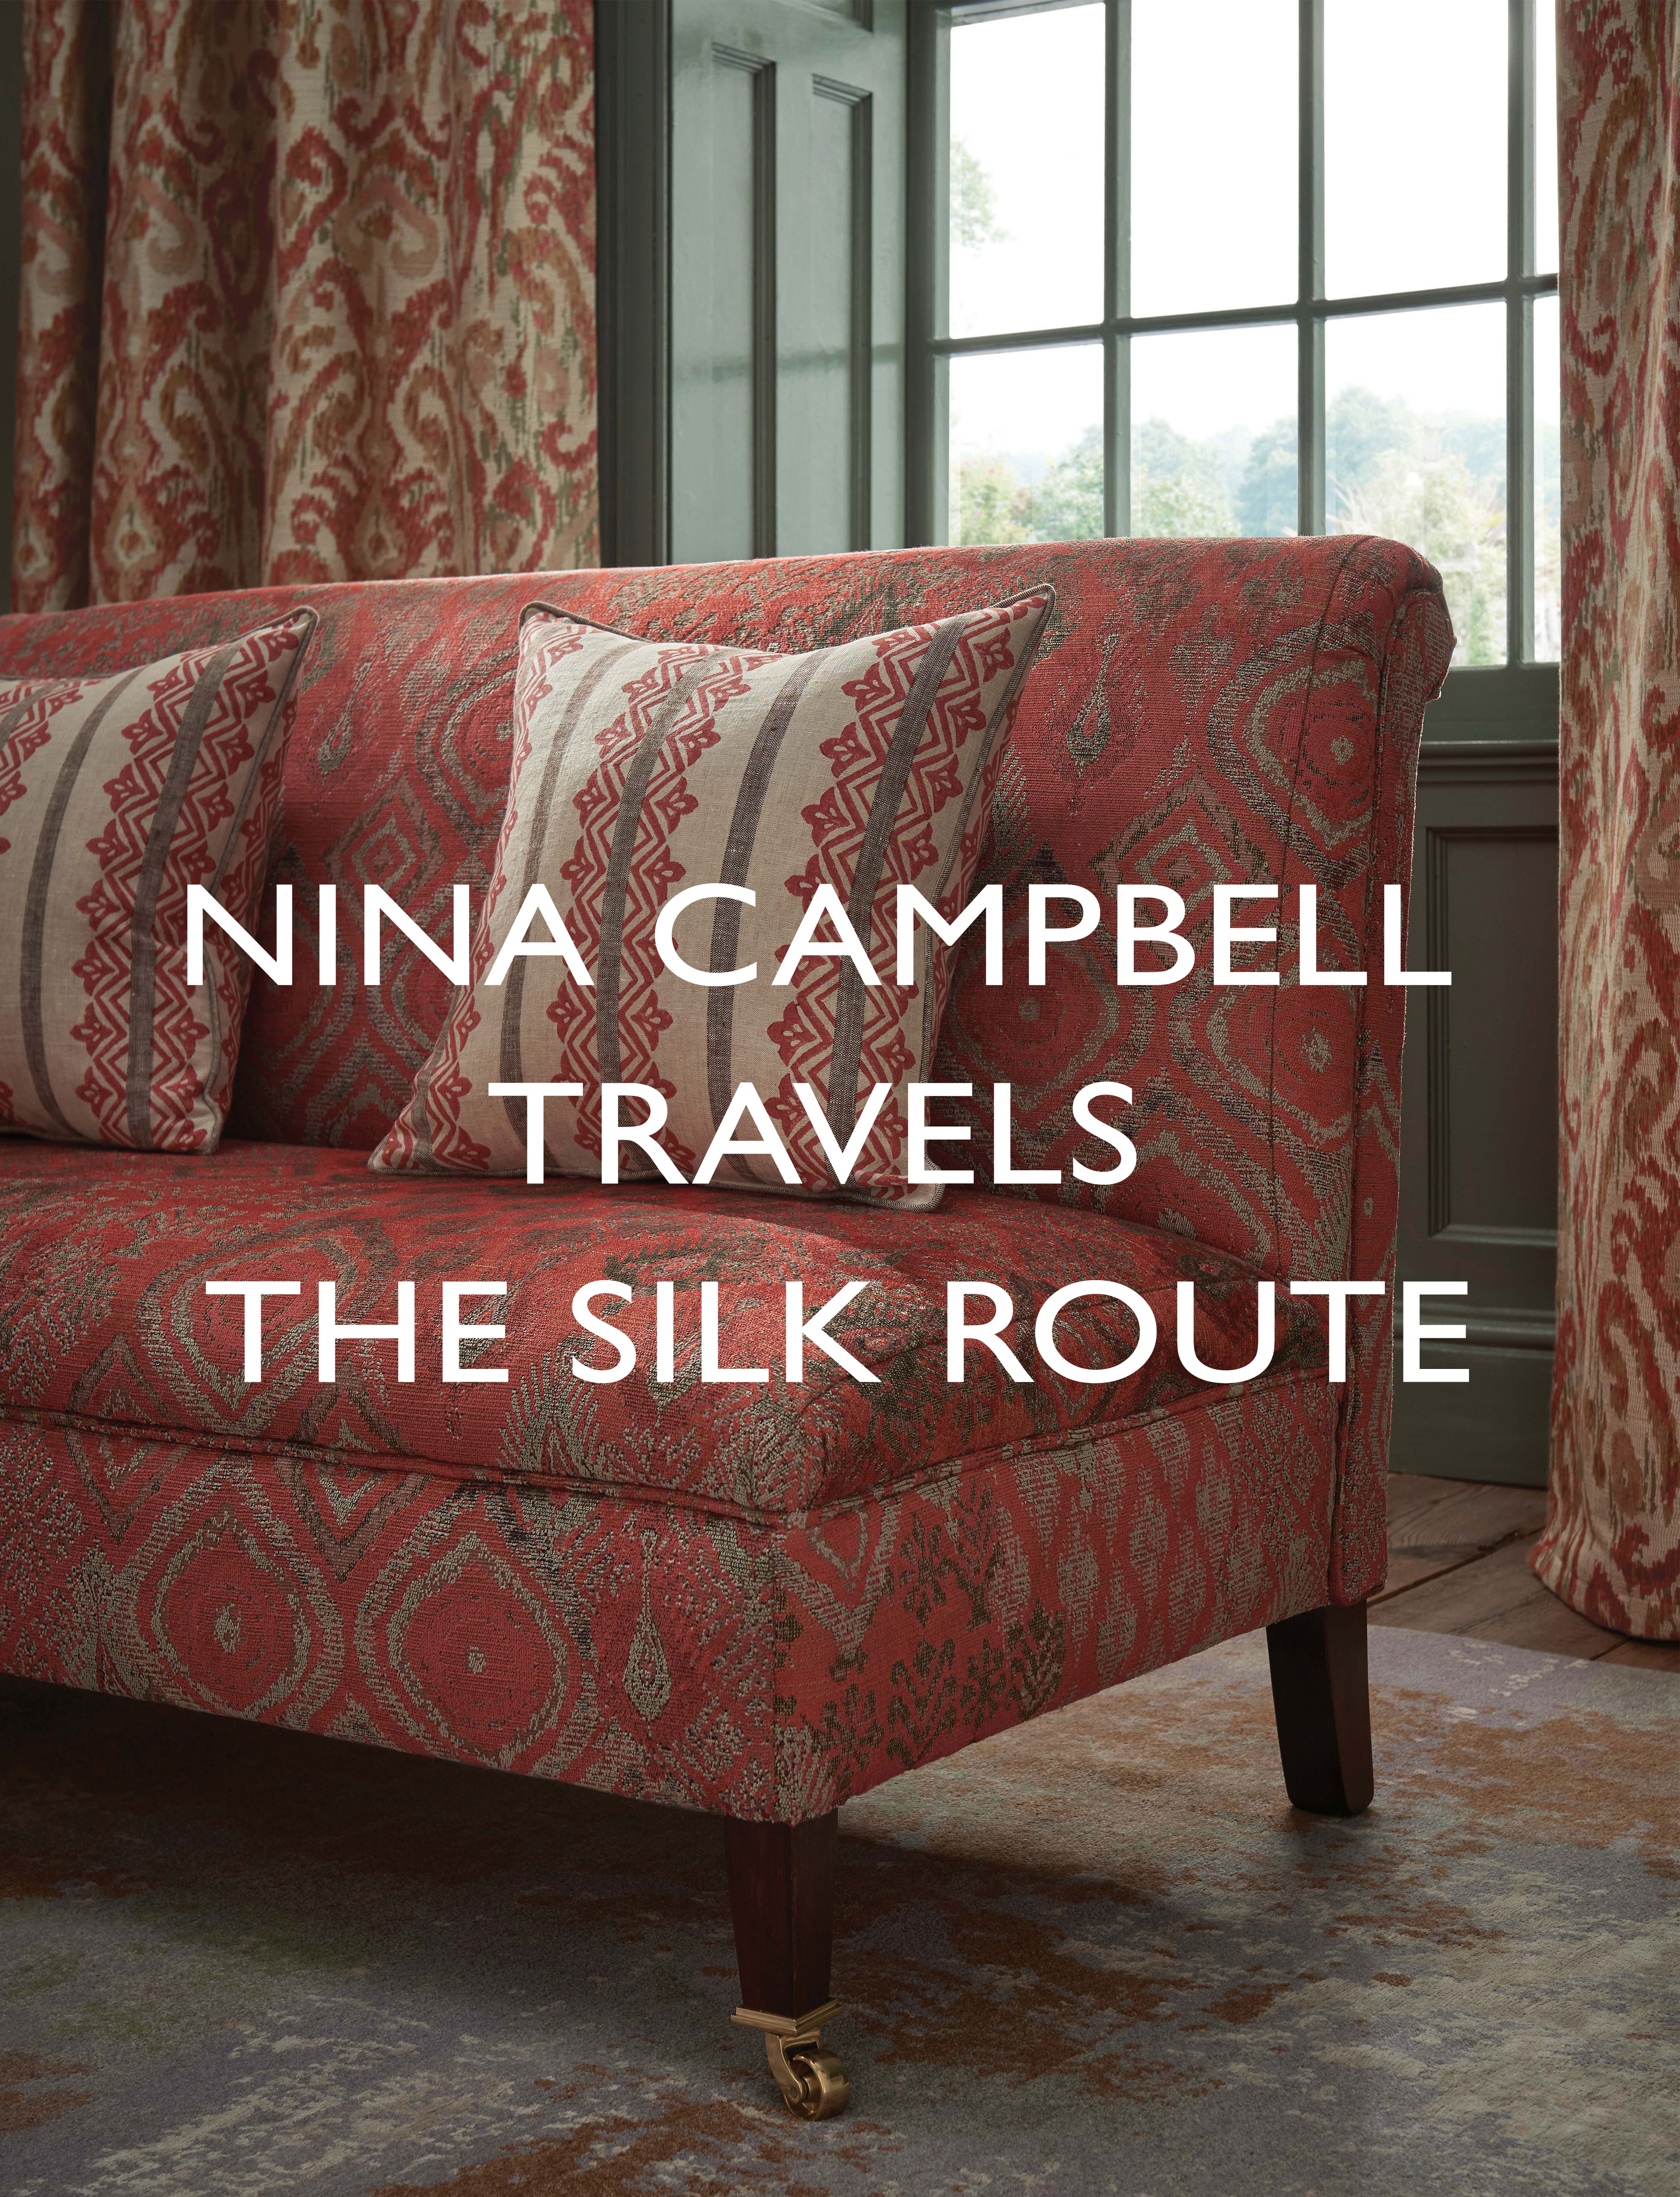 Nina Campbell Travels the Silk Route